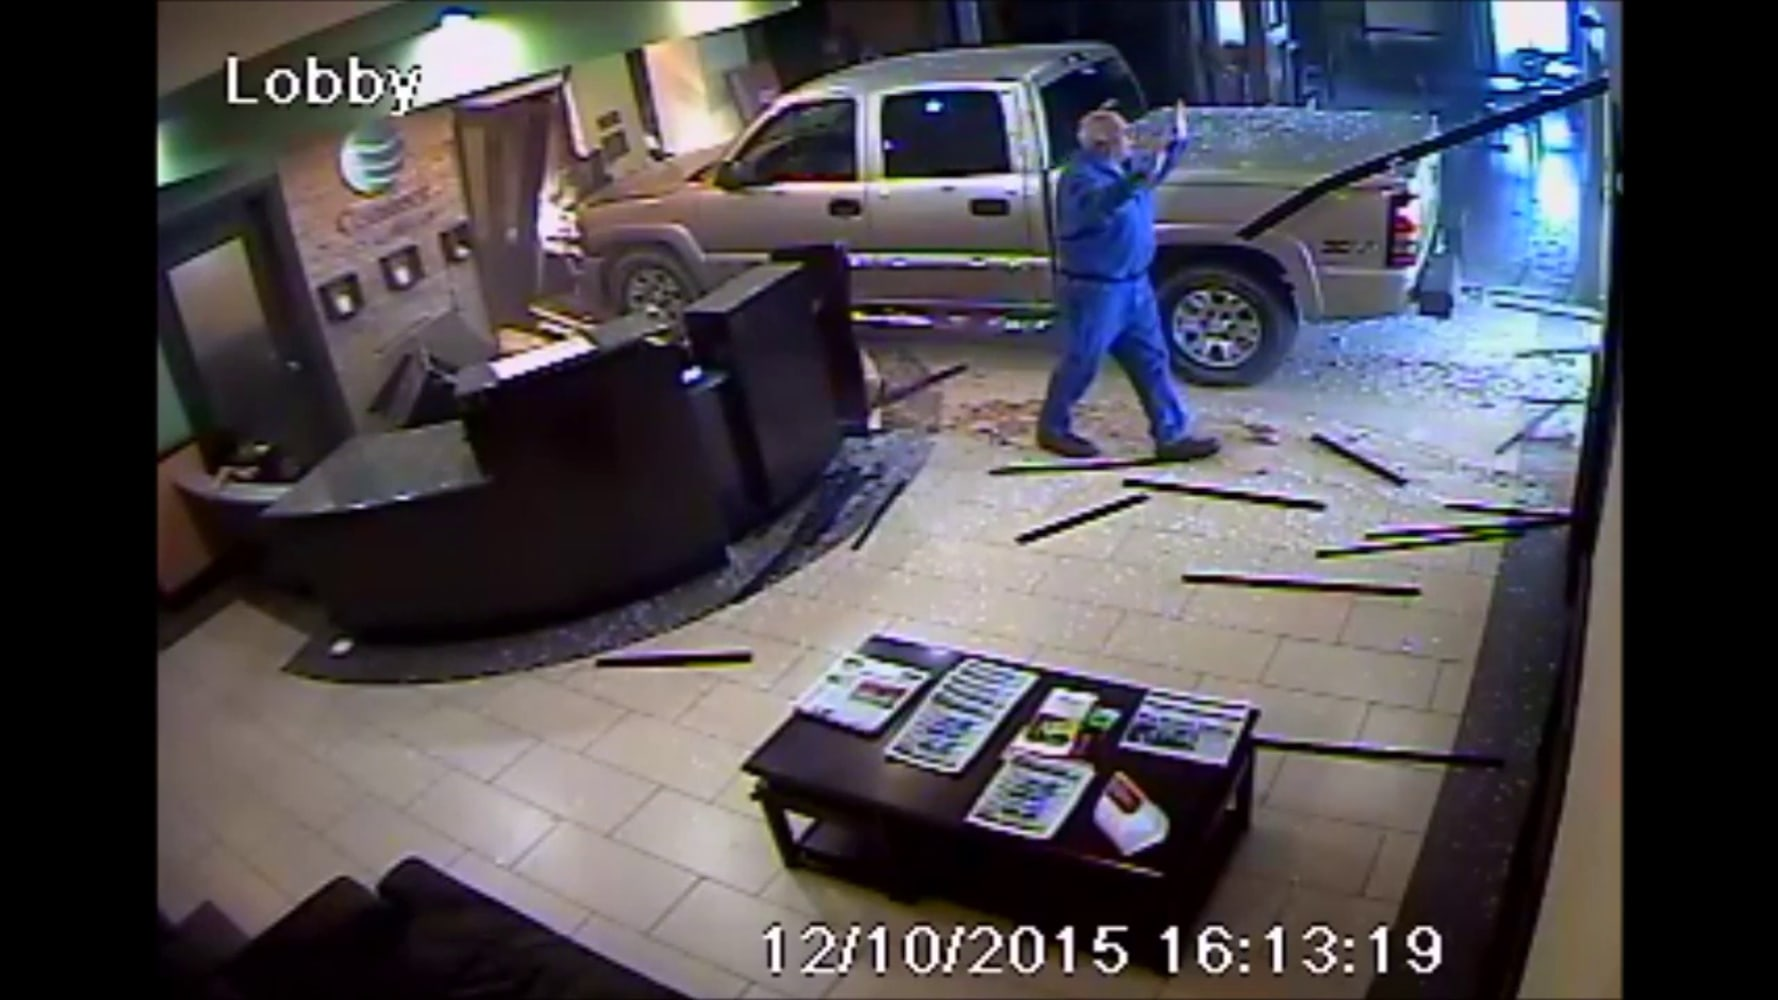 Image Driver Walks Away After Ramming Oklahoma Hotel Desk With Truck